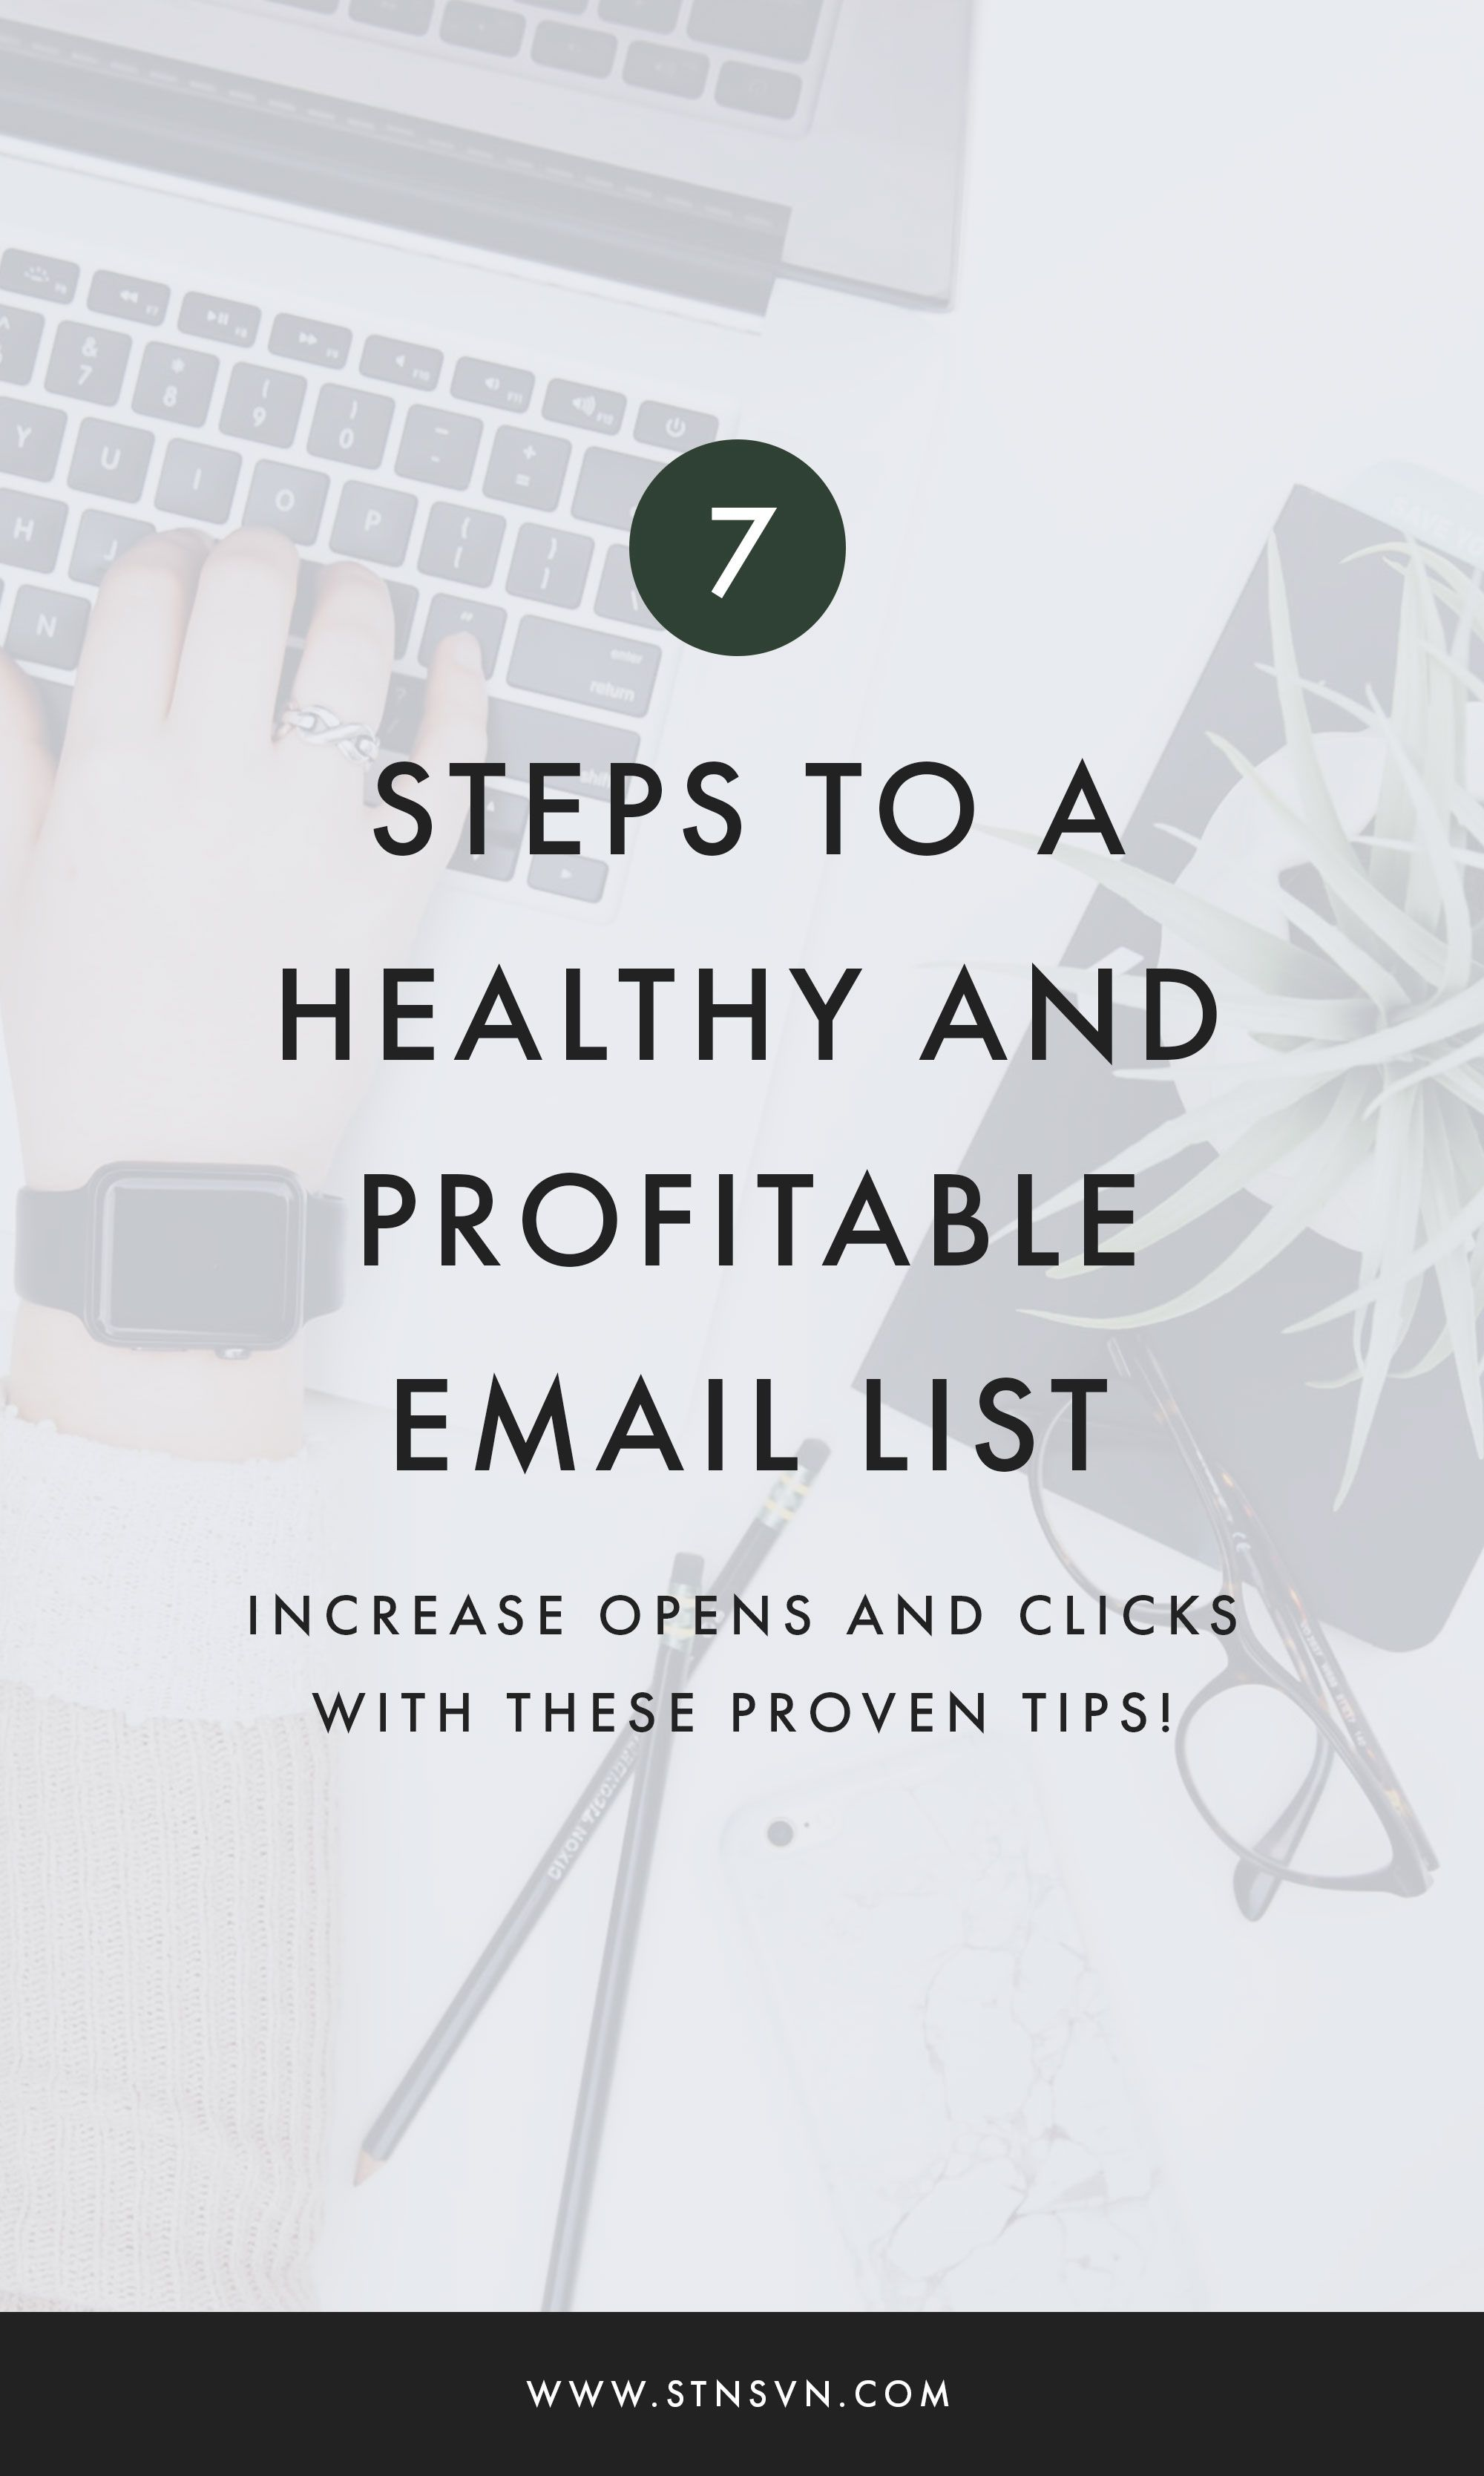 7 steps to a healthy and profitable email list email marketing